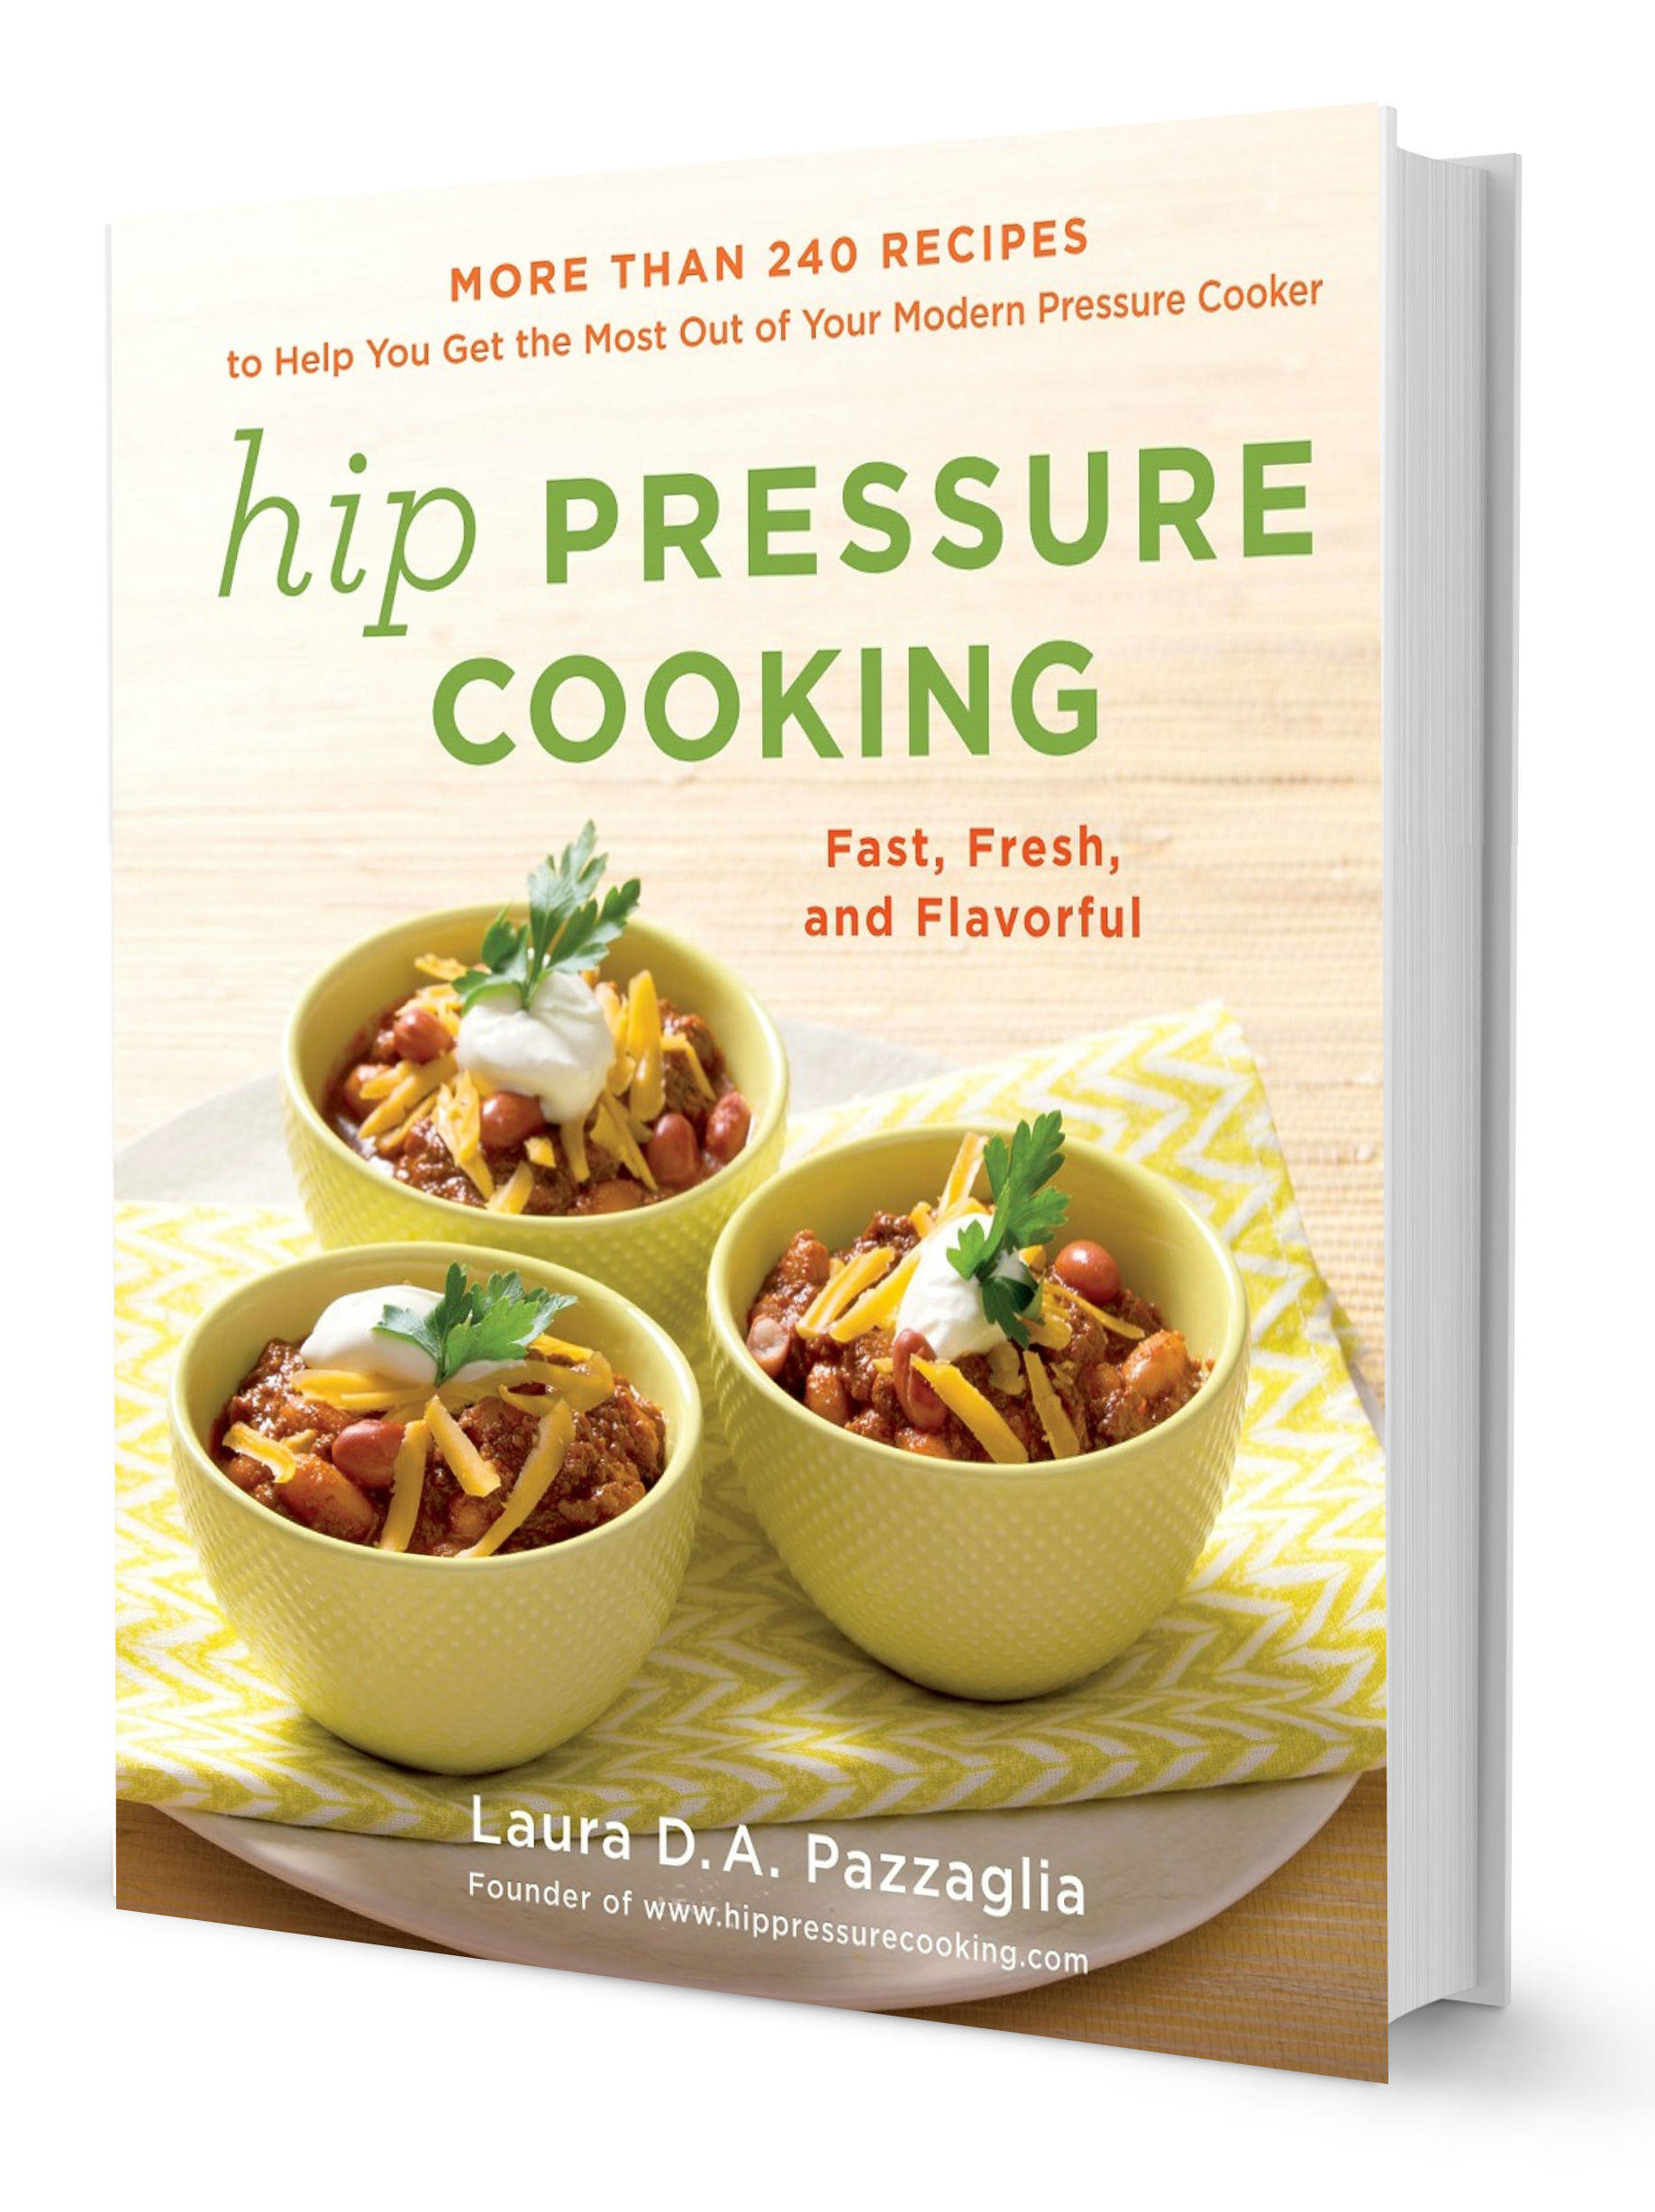 hip pressure cooking cookbook - The culmination of 10 years of pressure cooking experience with completely new recipes for both electric and stove top pressure cookers.